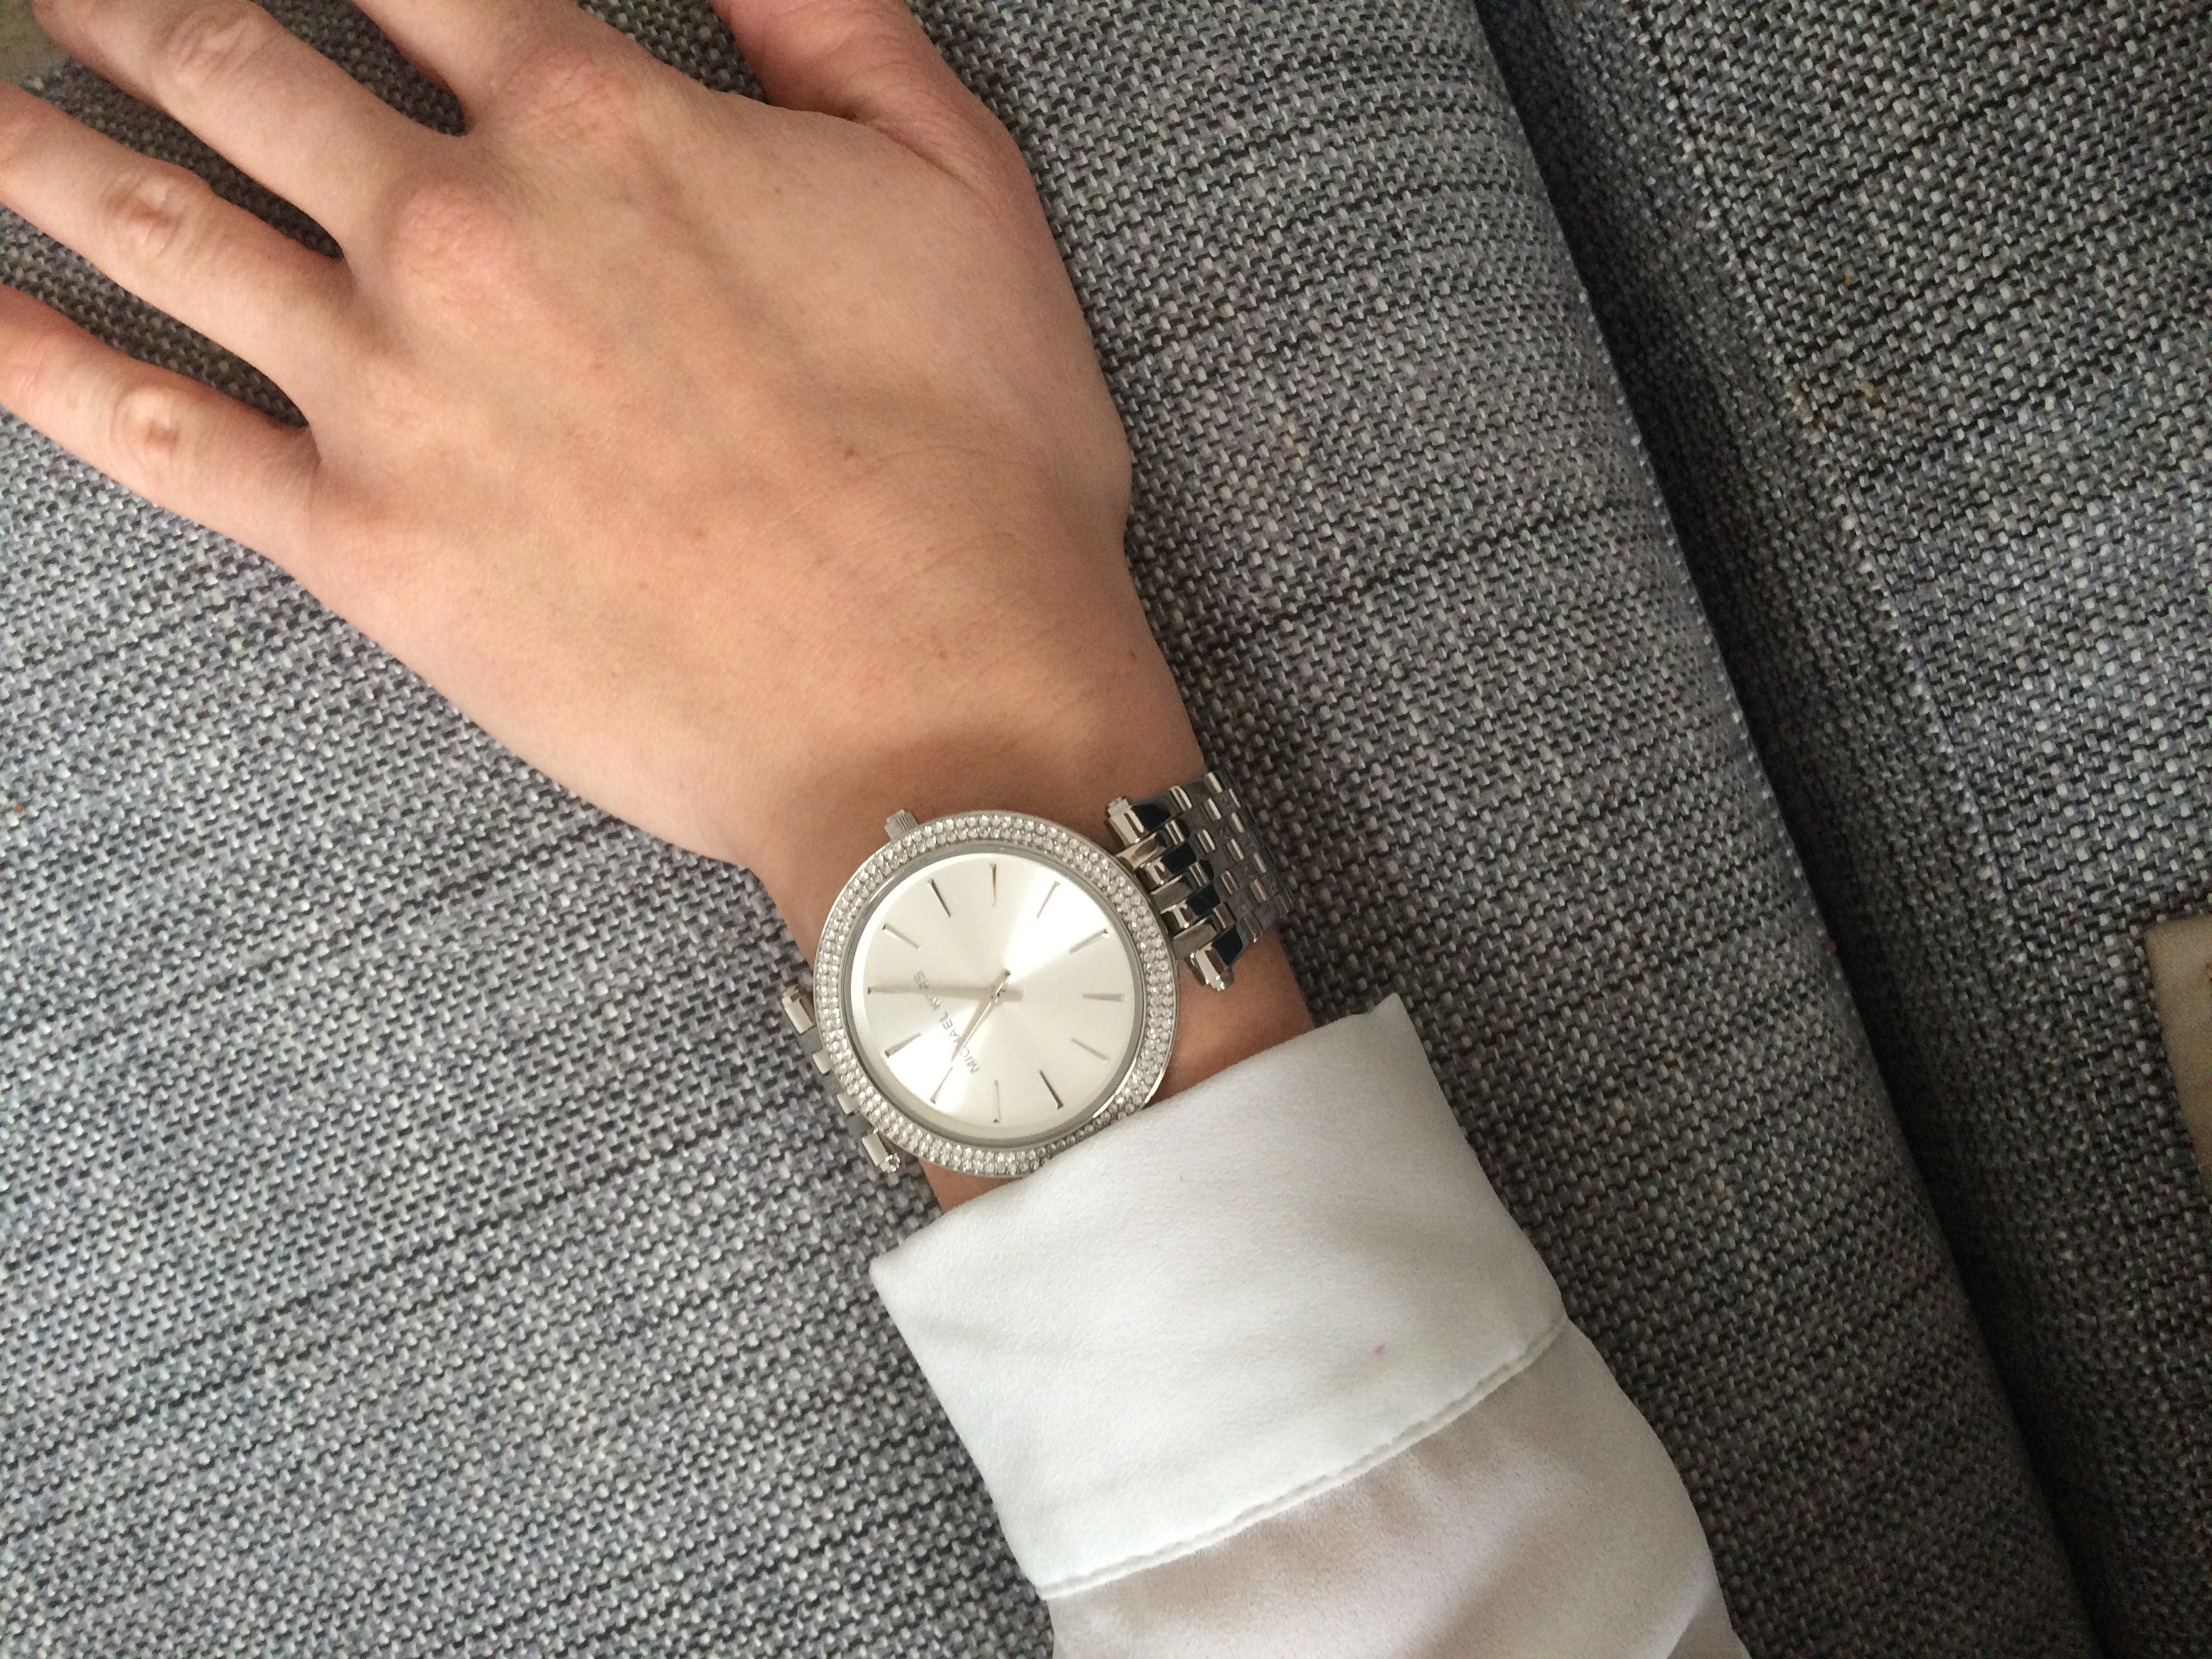 1264acc4fc Absolutely love my purchase! Such a beautiful and elegant watch. The dial  isnt too thick like some styles so it sits nice and close on the wrist.